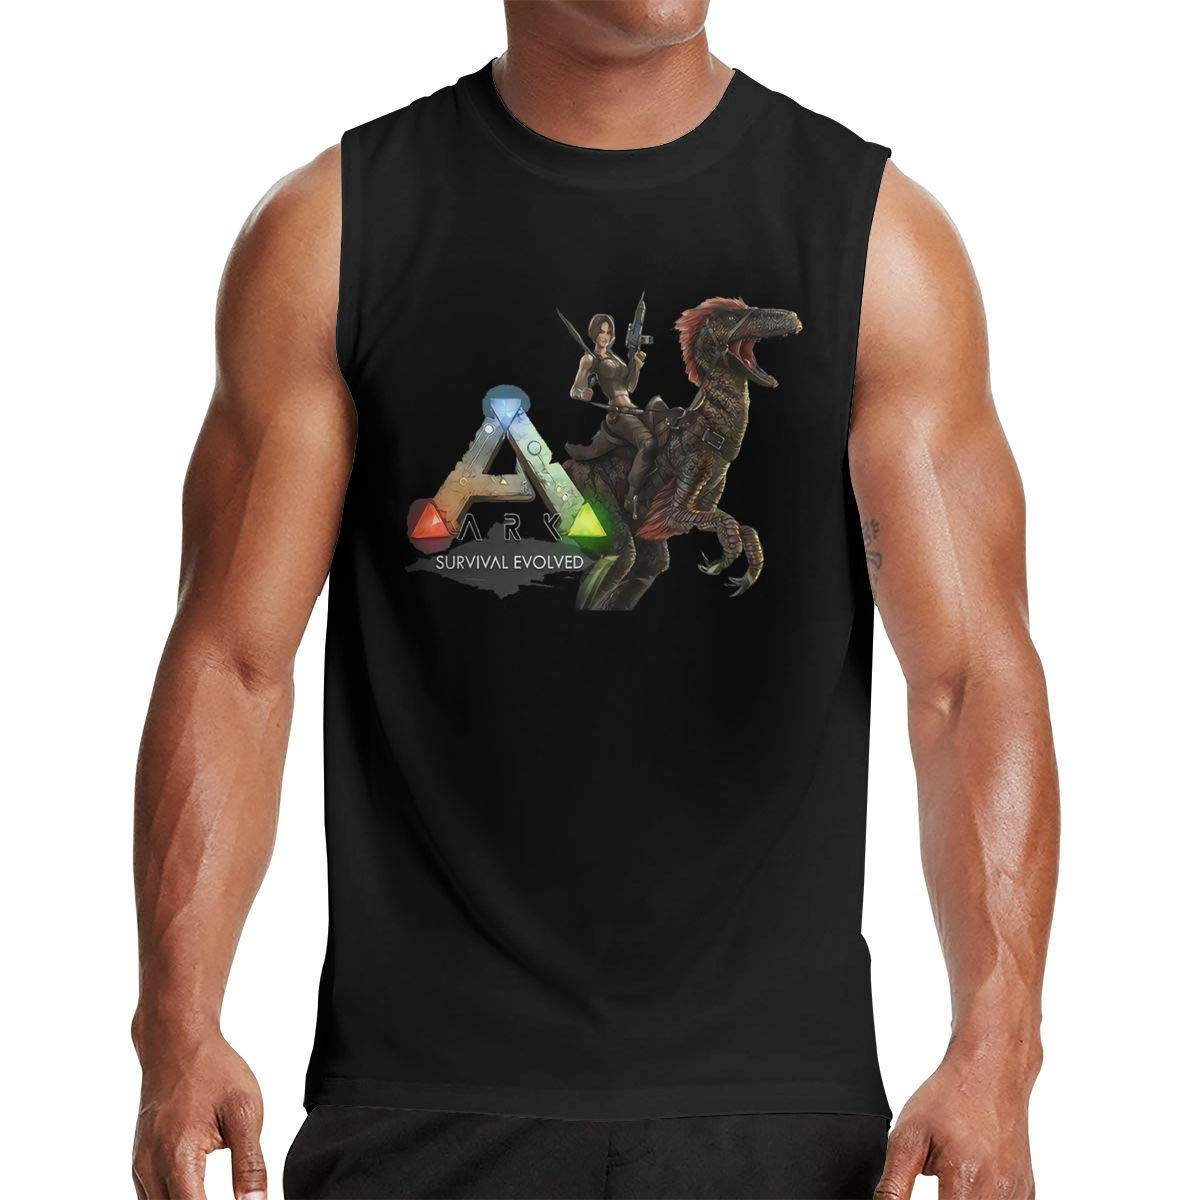 Thomlarryca Ark Survival Evolved S Gym Muscle T Shirt Classic Athletic Sleeveless T Sh